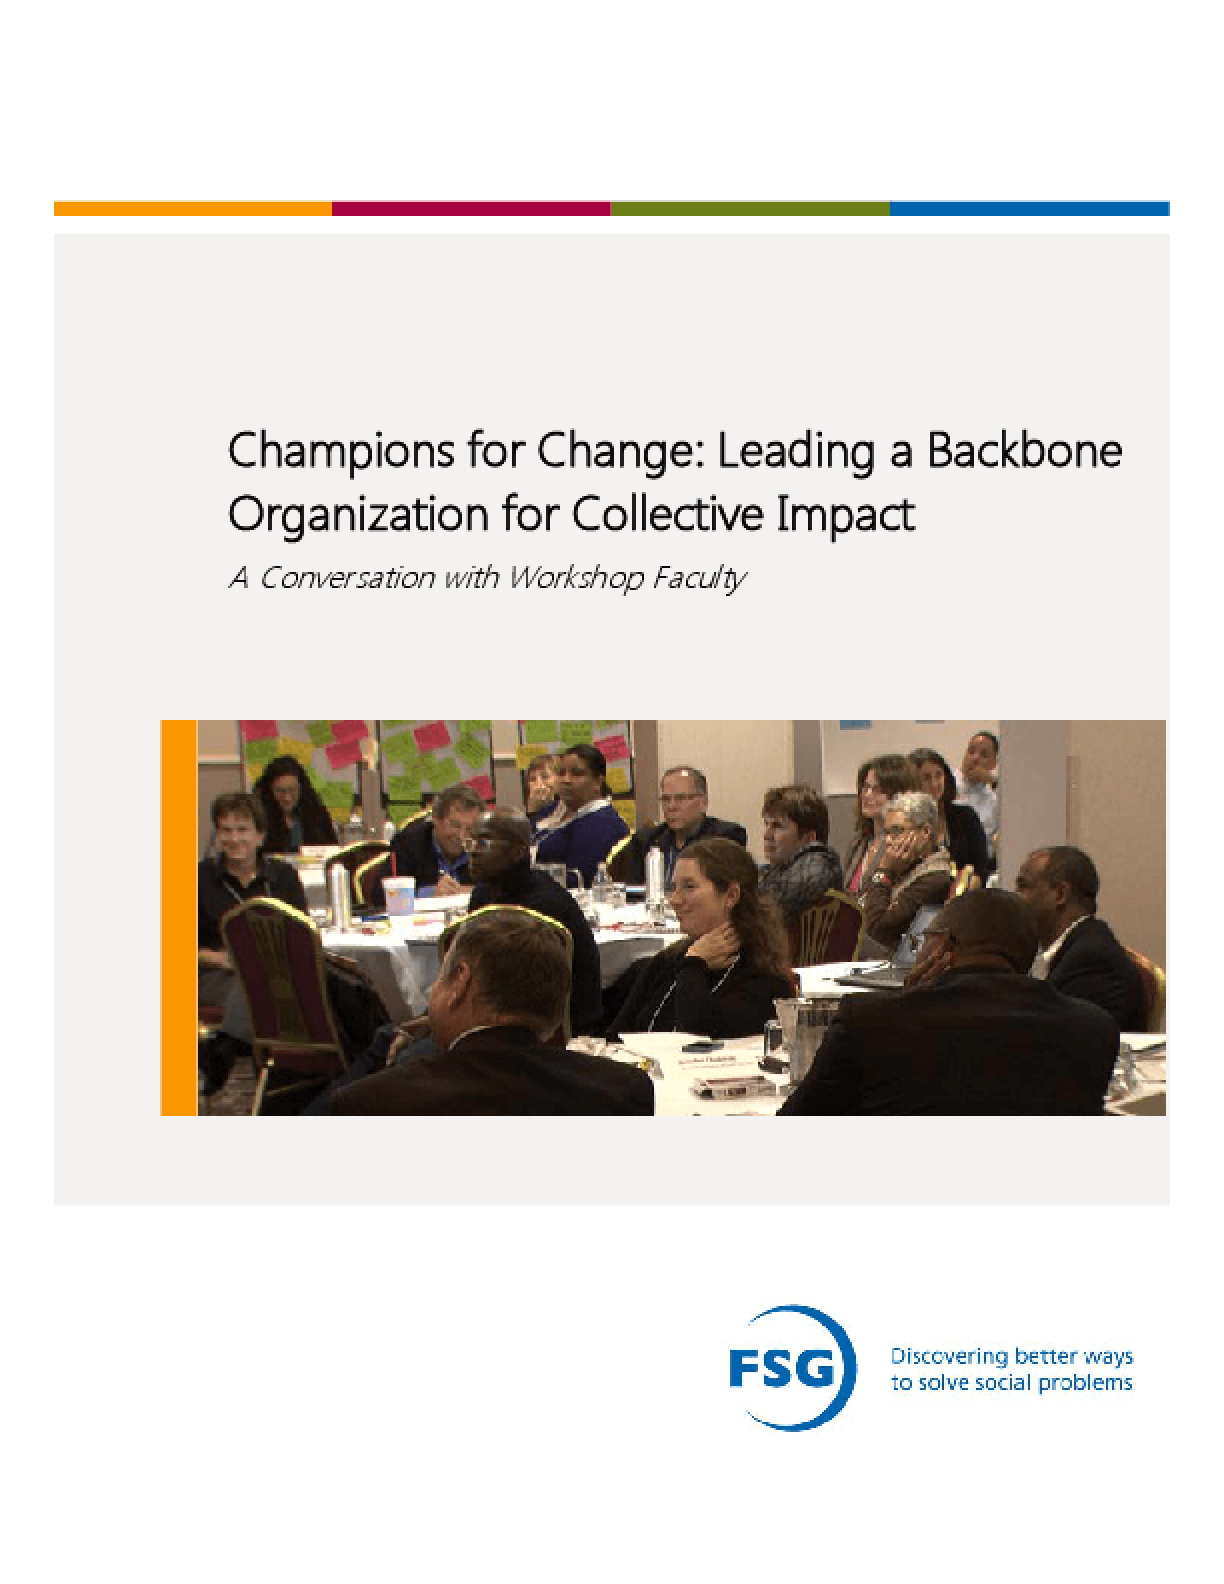 Champions for Change: Leading a Backbone Organization for Collective Impact - A Conversation with Workshop Faculty